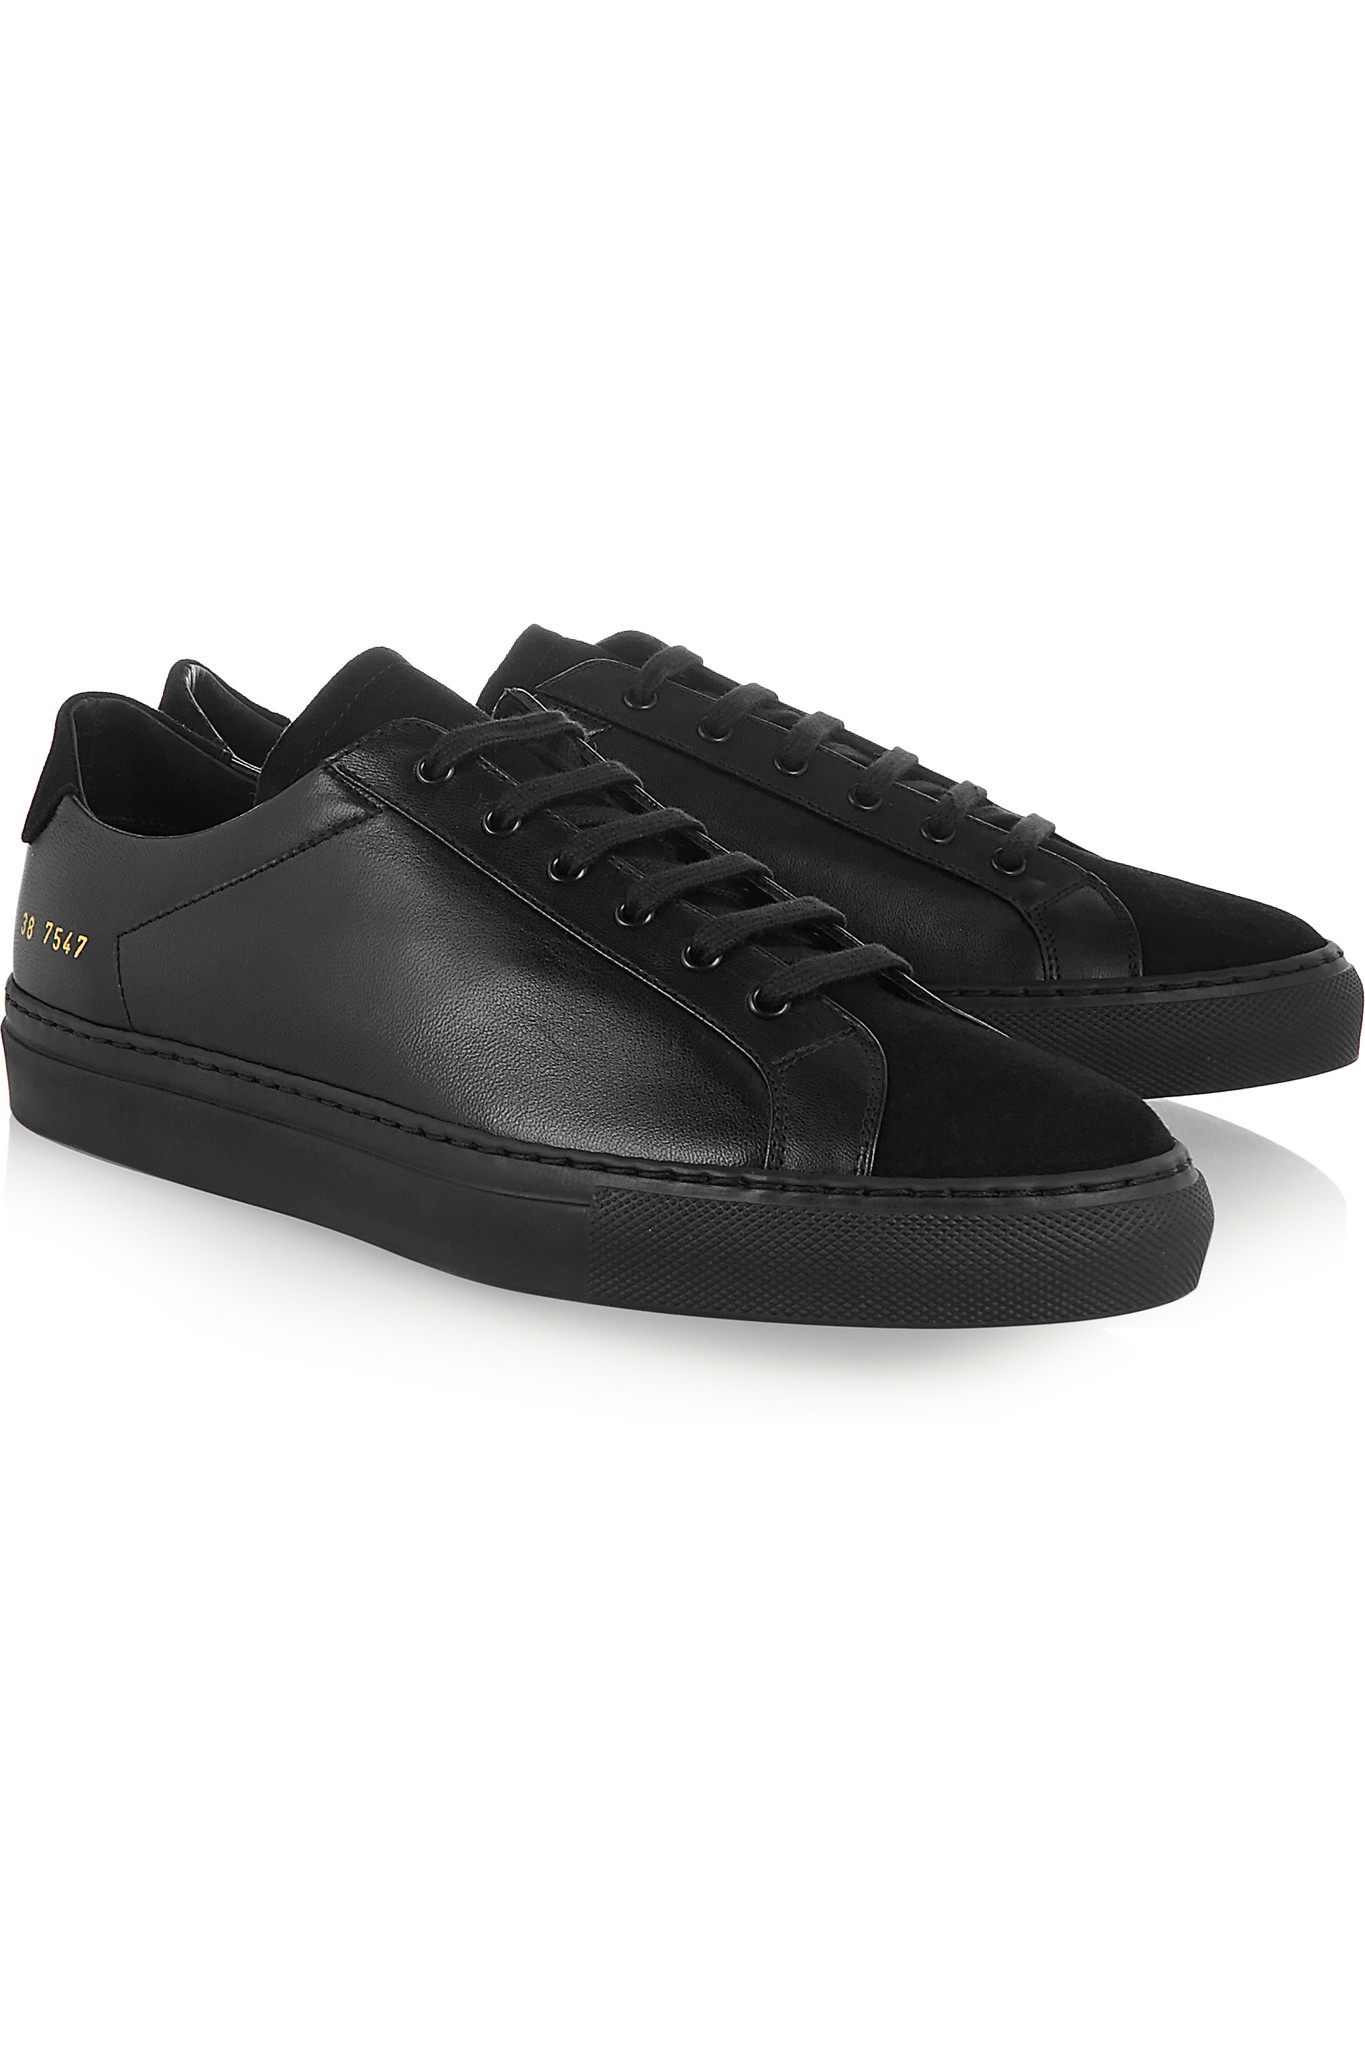 Common Project All Black Shoes